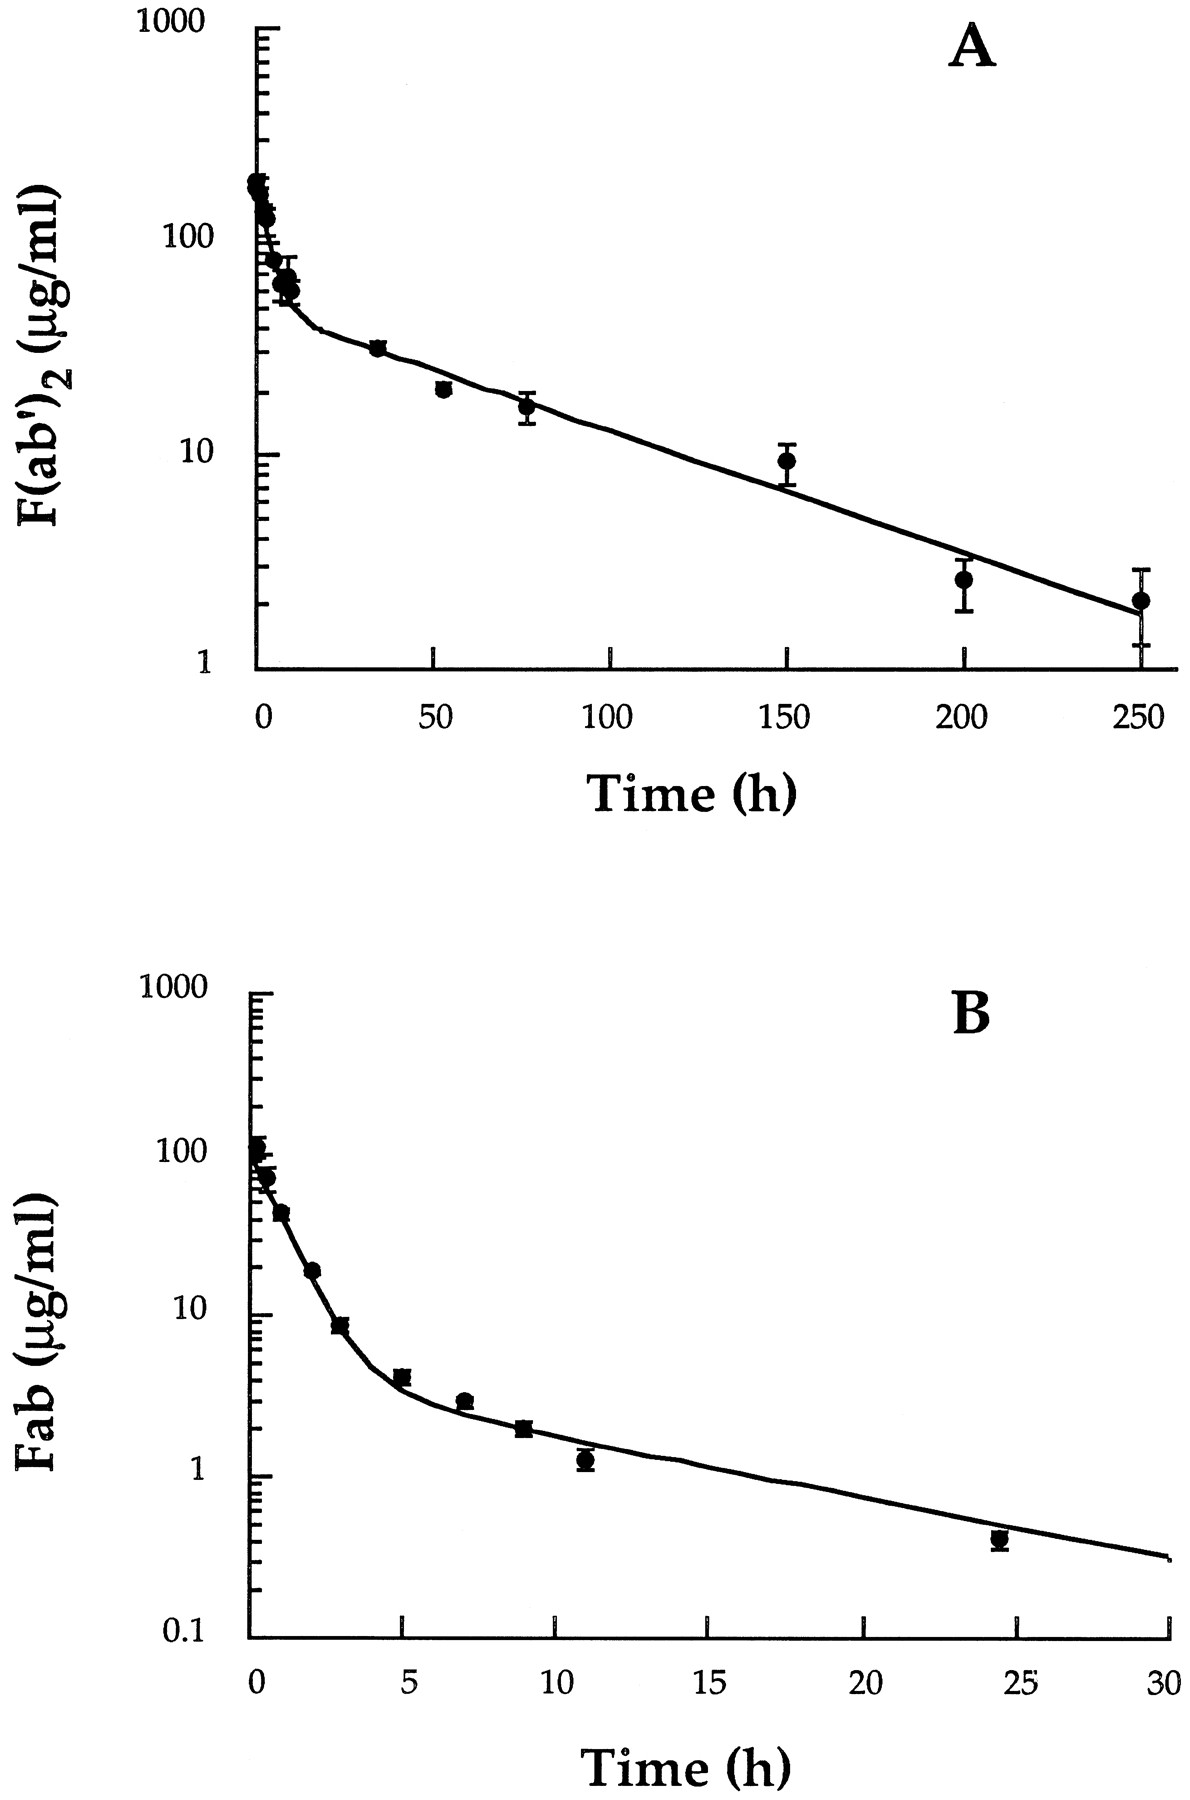 Effect Of Antivenom On Venom Pharmacokinetics In Experimentally 2 Animal Diagram Snake Labeled And Unlabeled One Download Figure Open New Tab